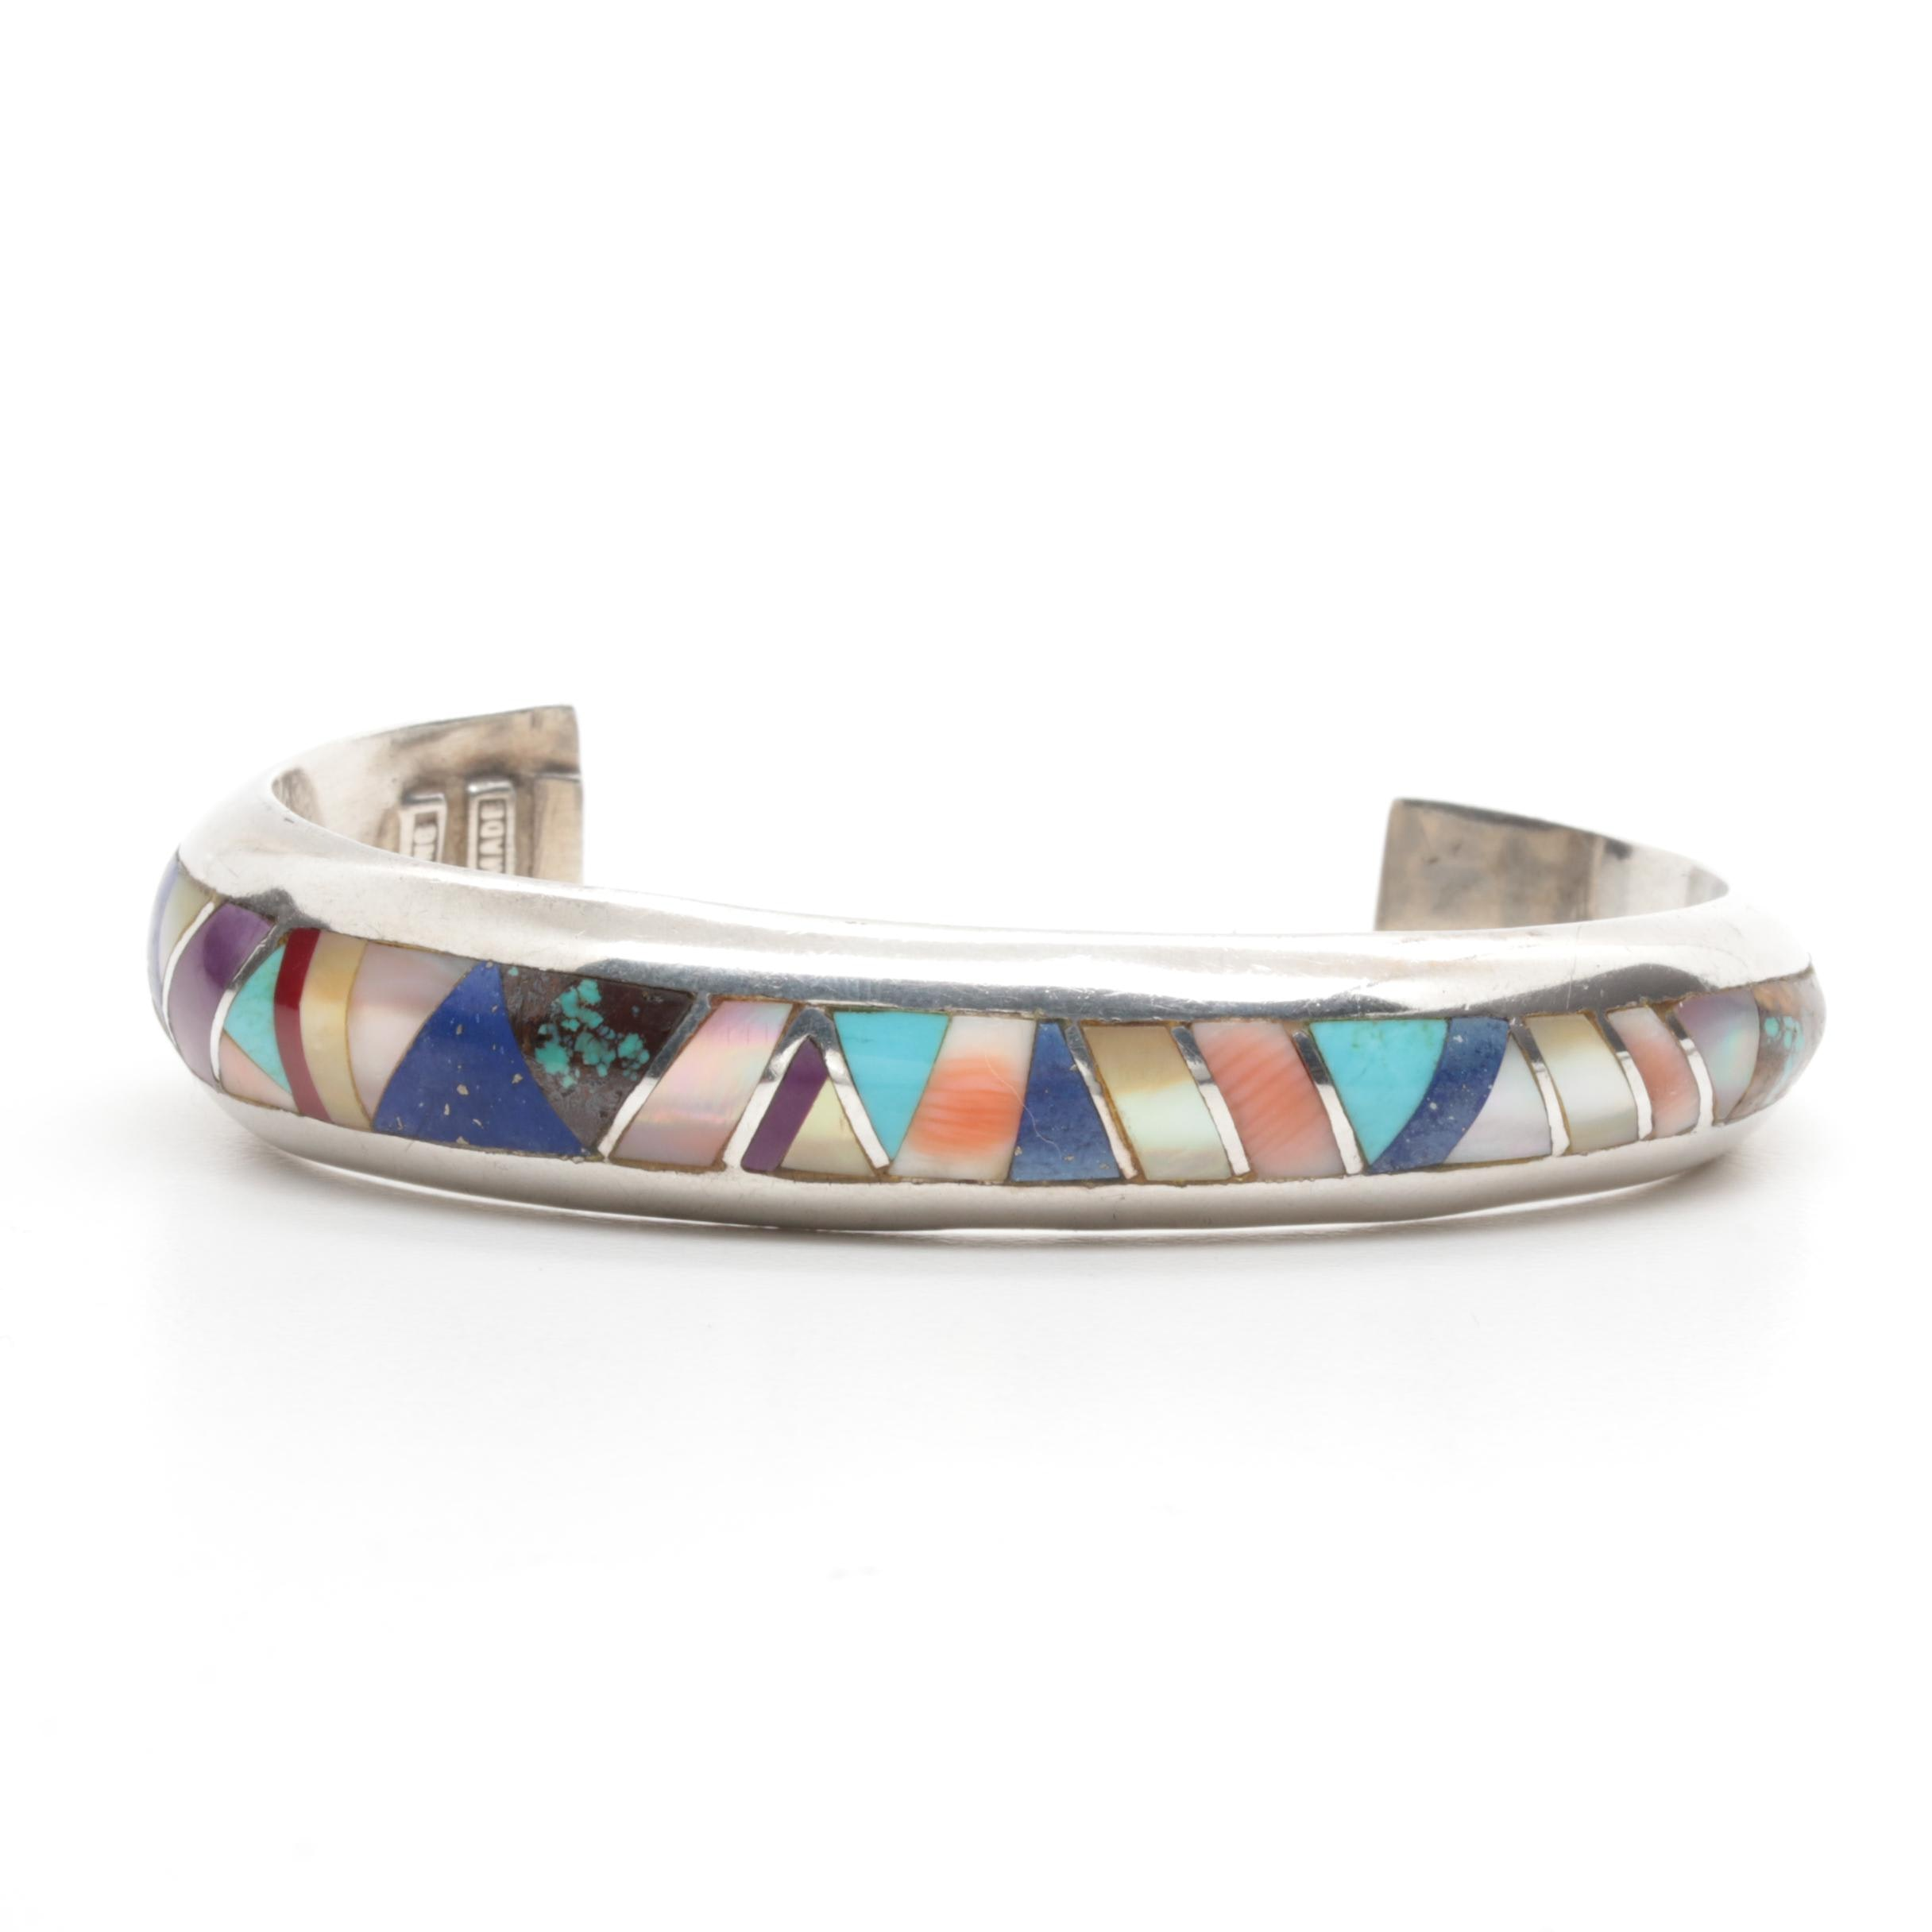 Southwestern Style Sterling Silver Cuff Bracelet with Inlay Including Turquoise